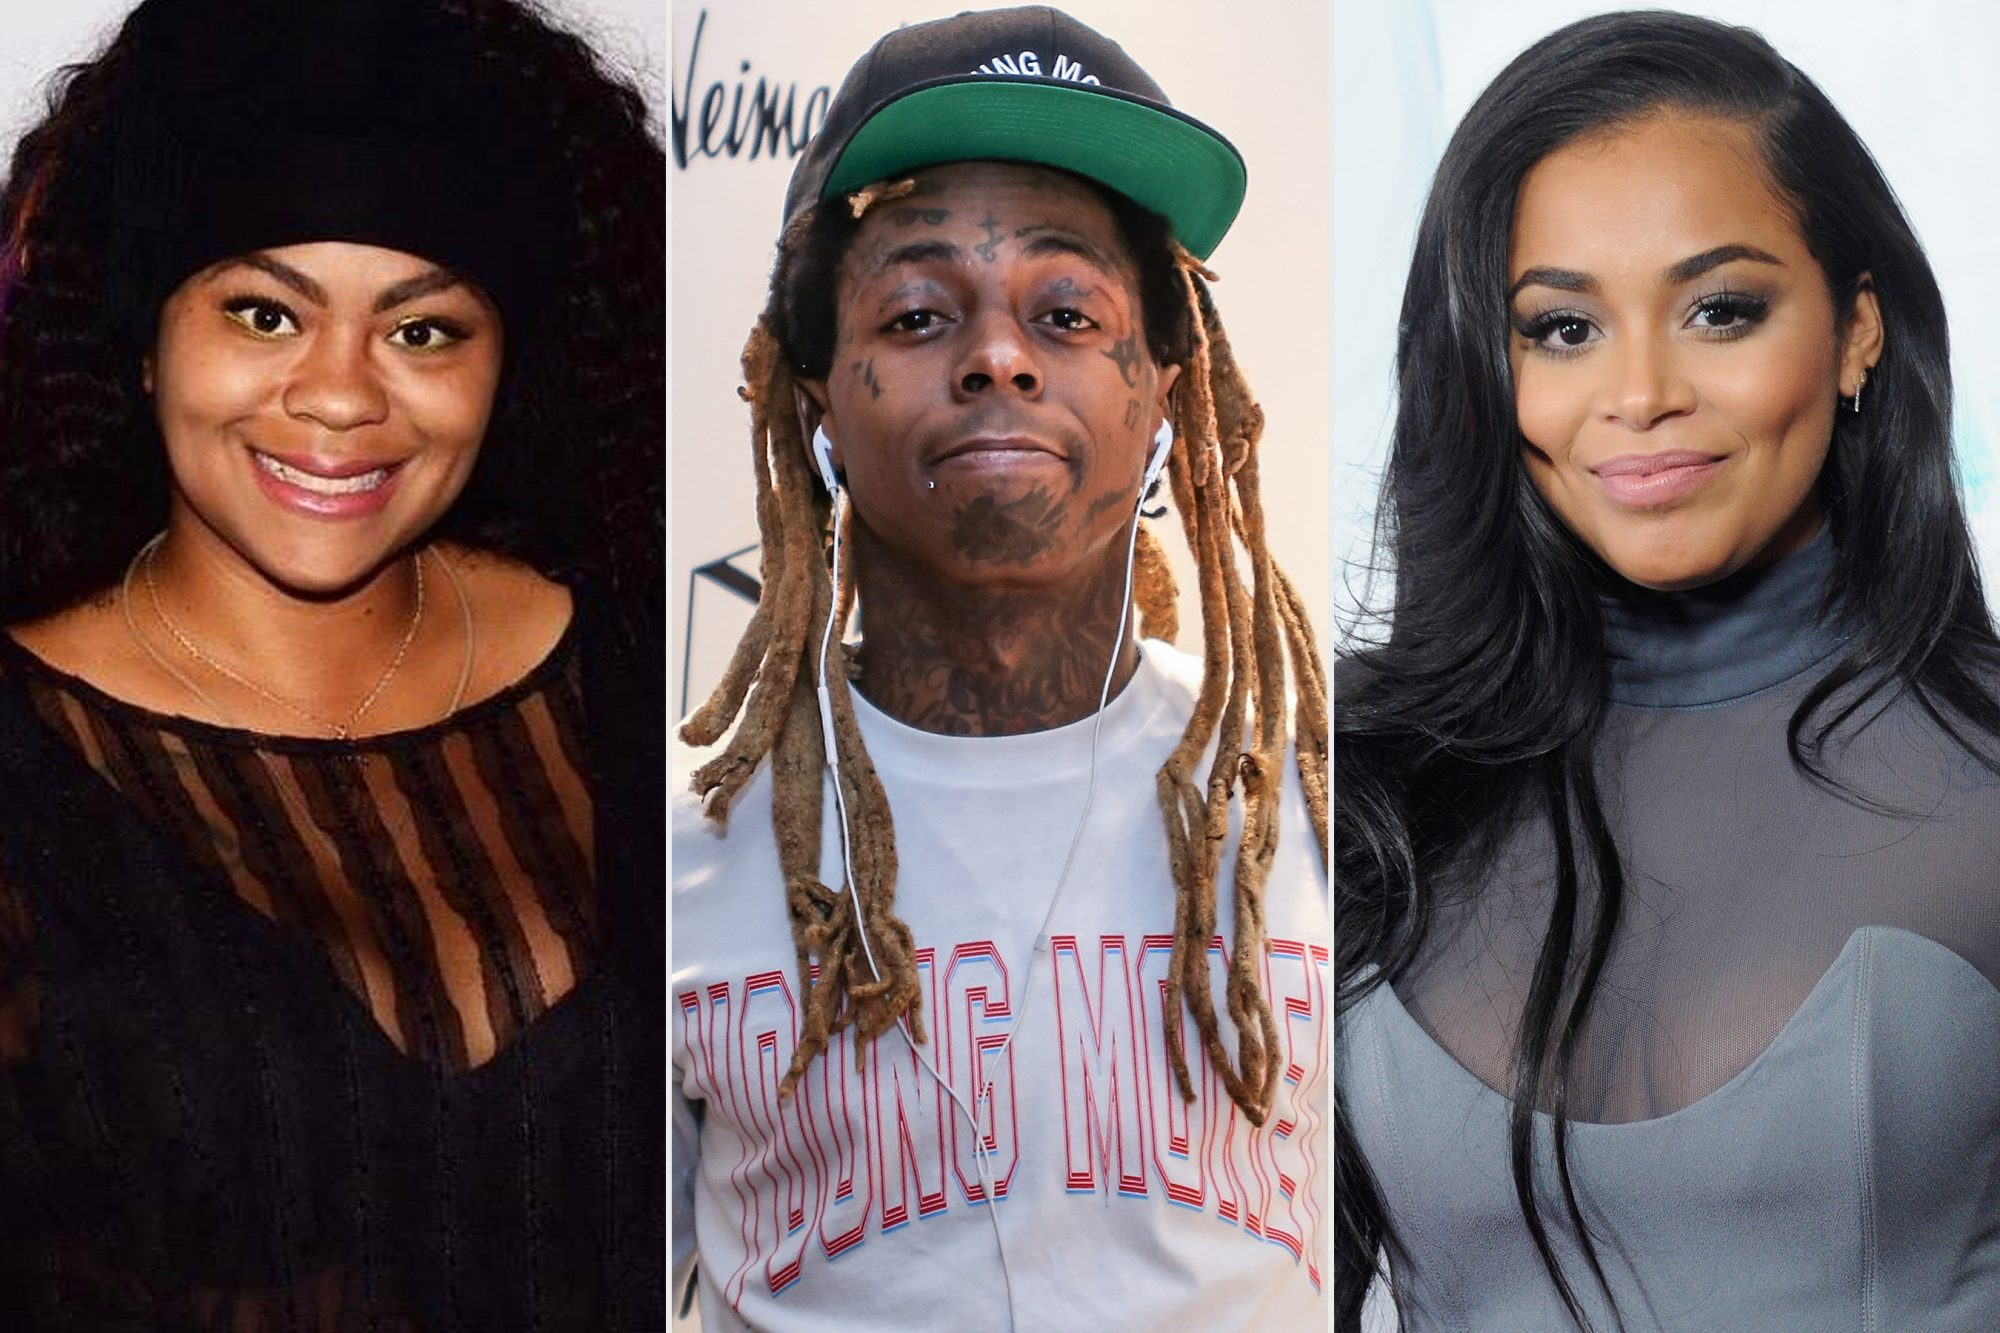 Nivea, Lil Wayne, Lauren London